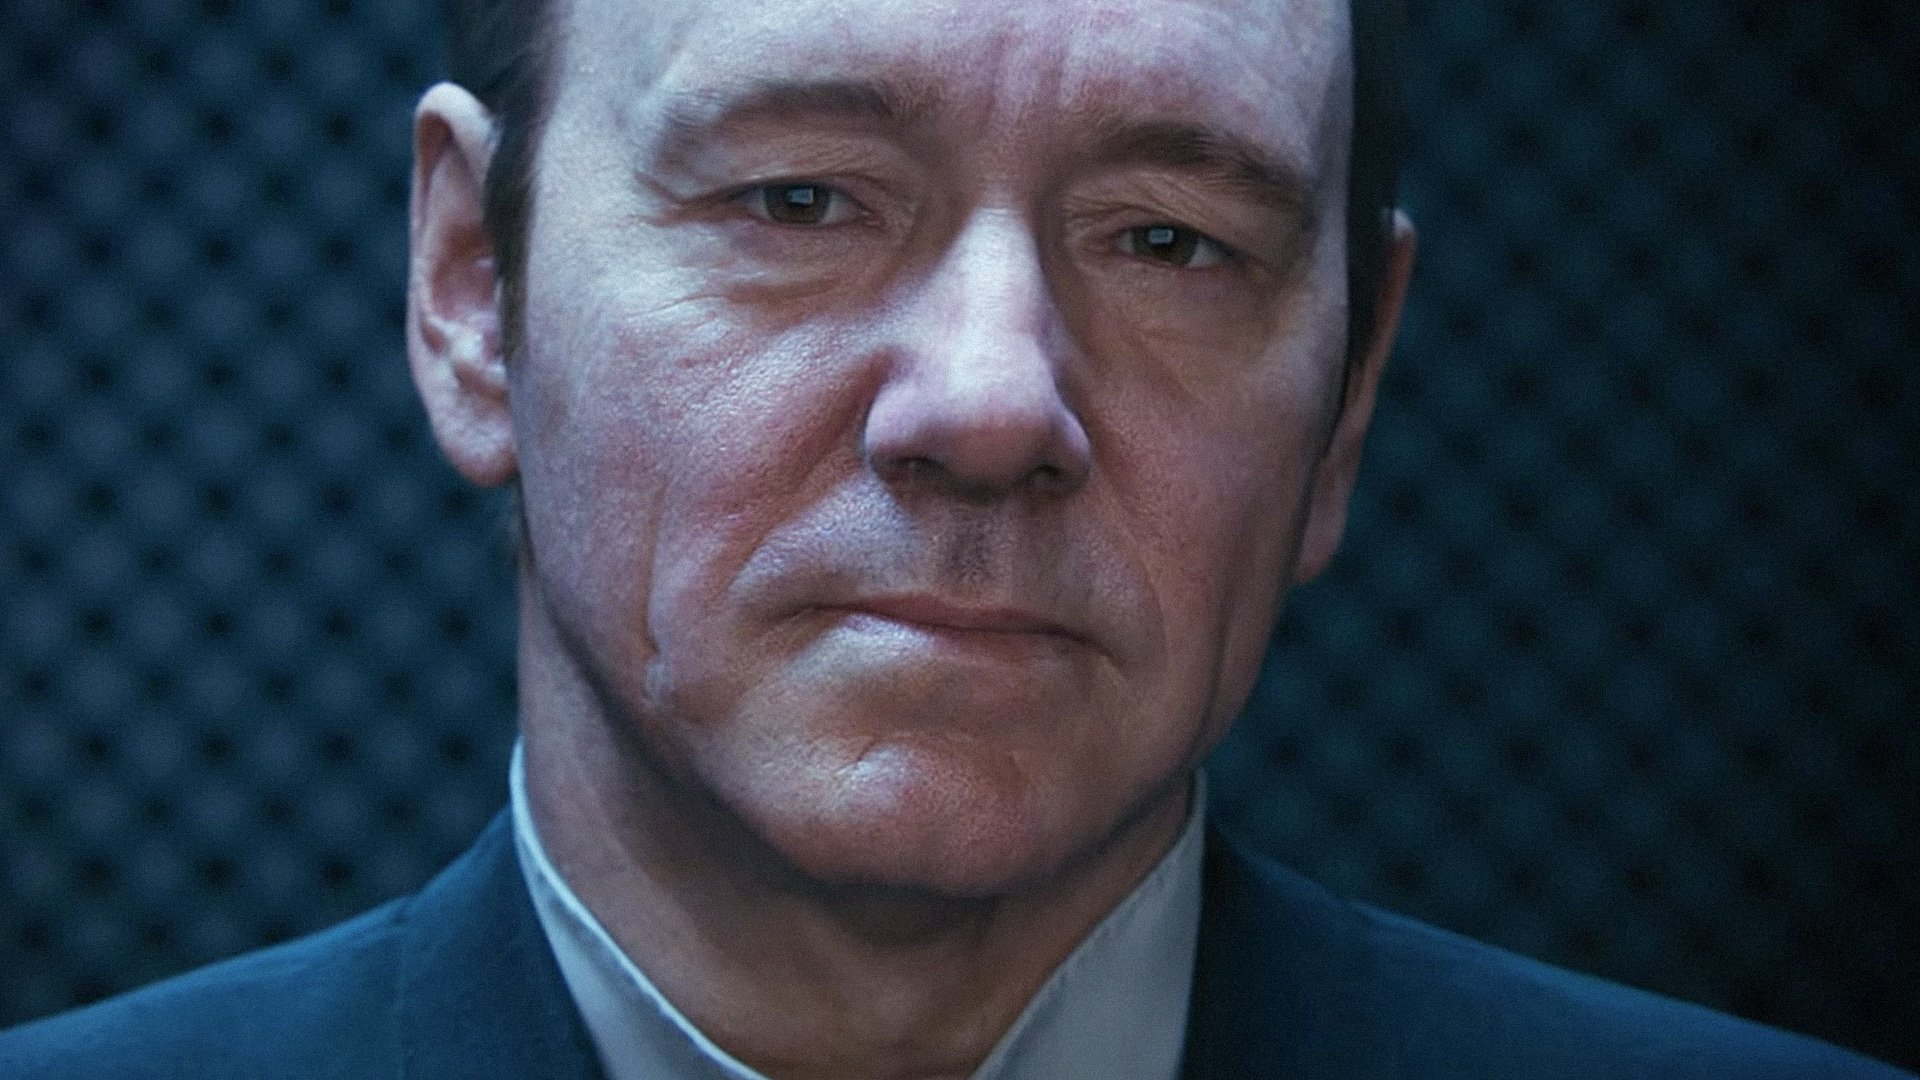 Image du jeu vidéo Call of Duty: Advanced Warfare avec Kevin Spacey